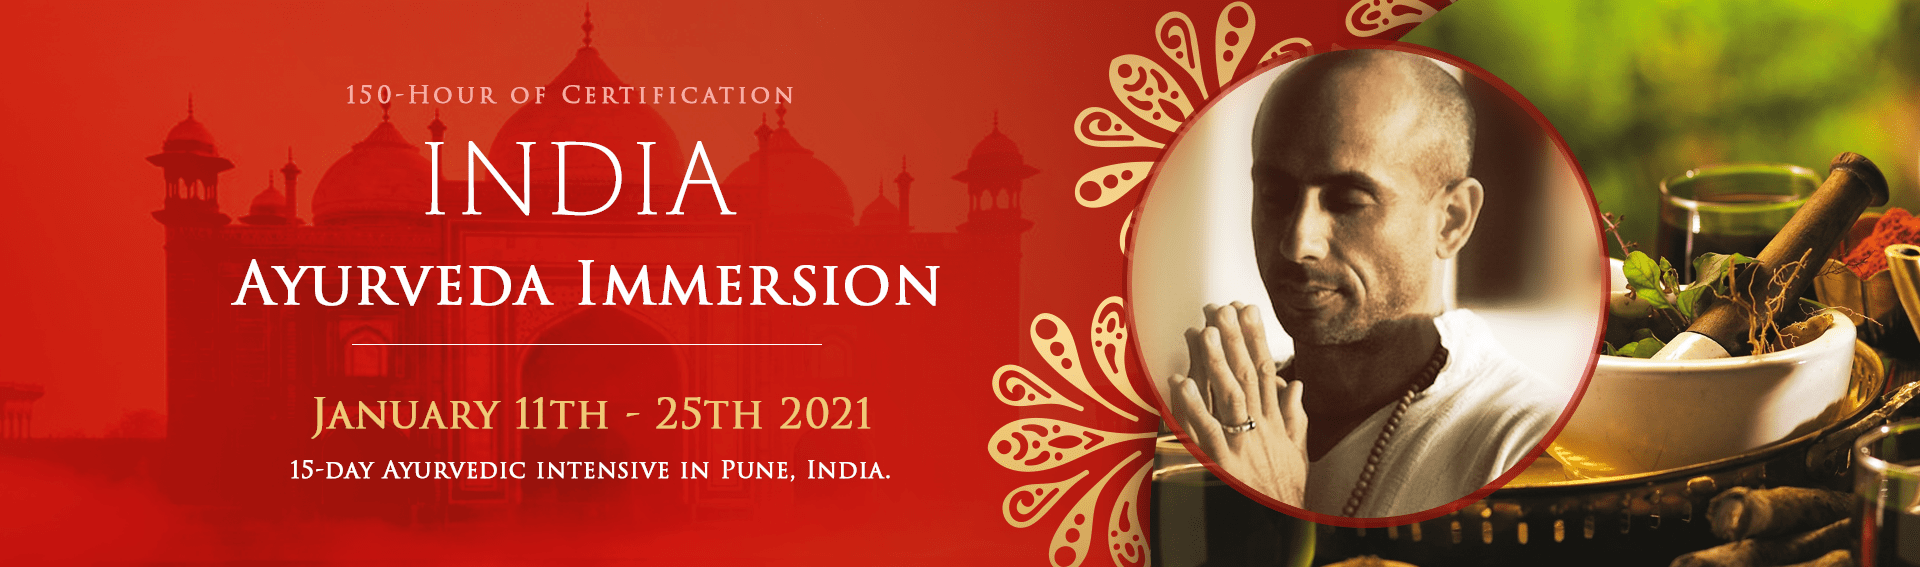 India Ayurvedic Immersion